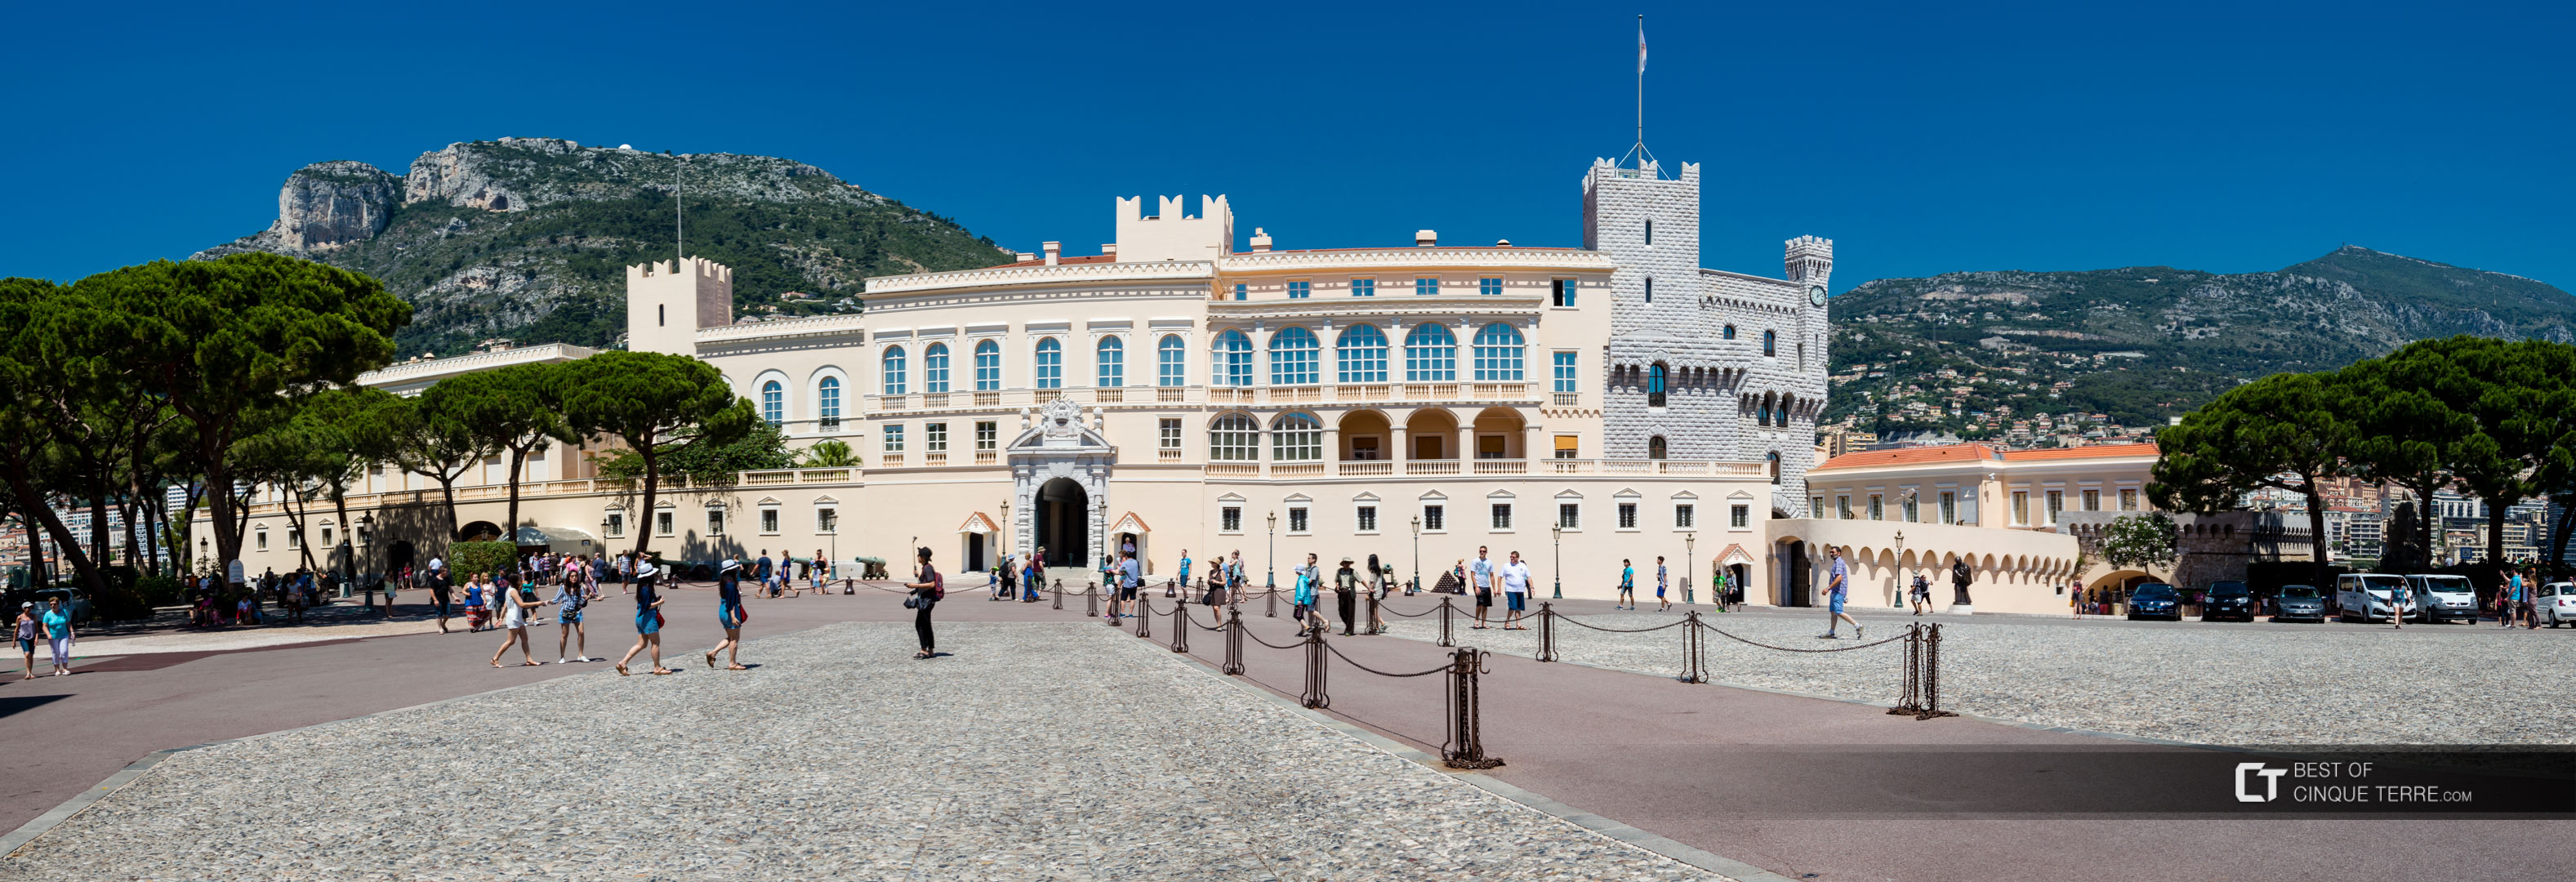 Monaco and monte carlo palace of the princes of monaco and the square publicscrutiny Choice Image